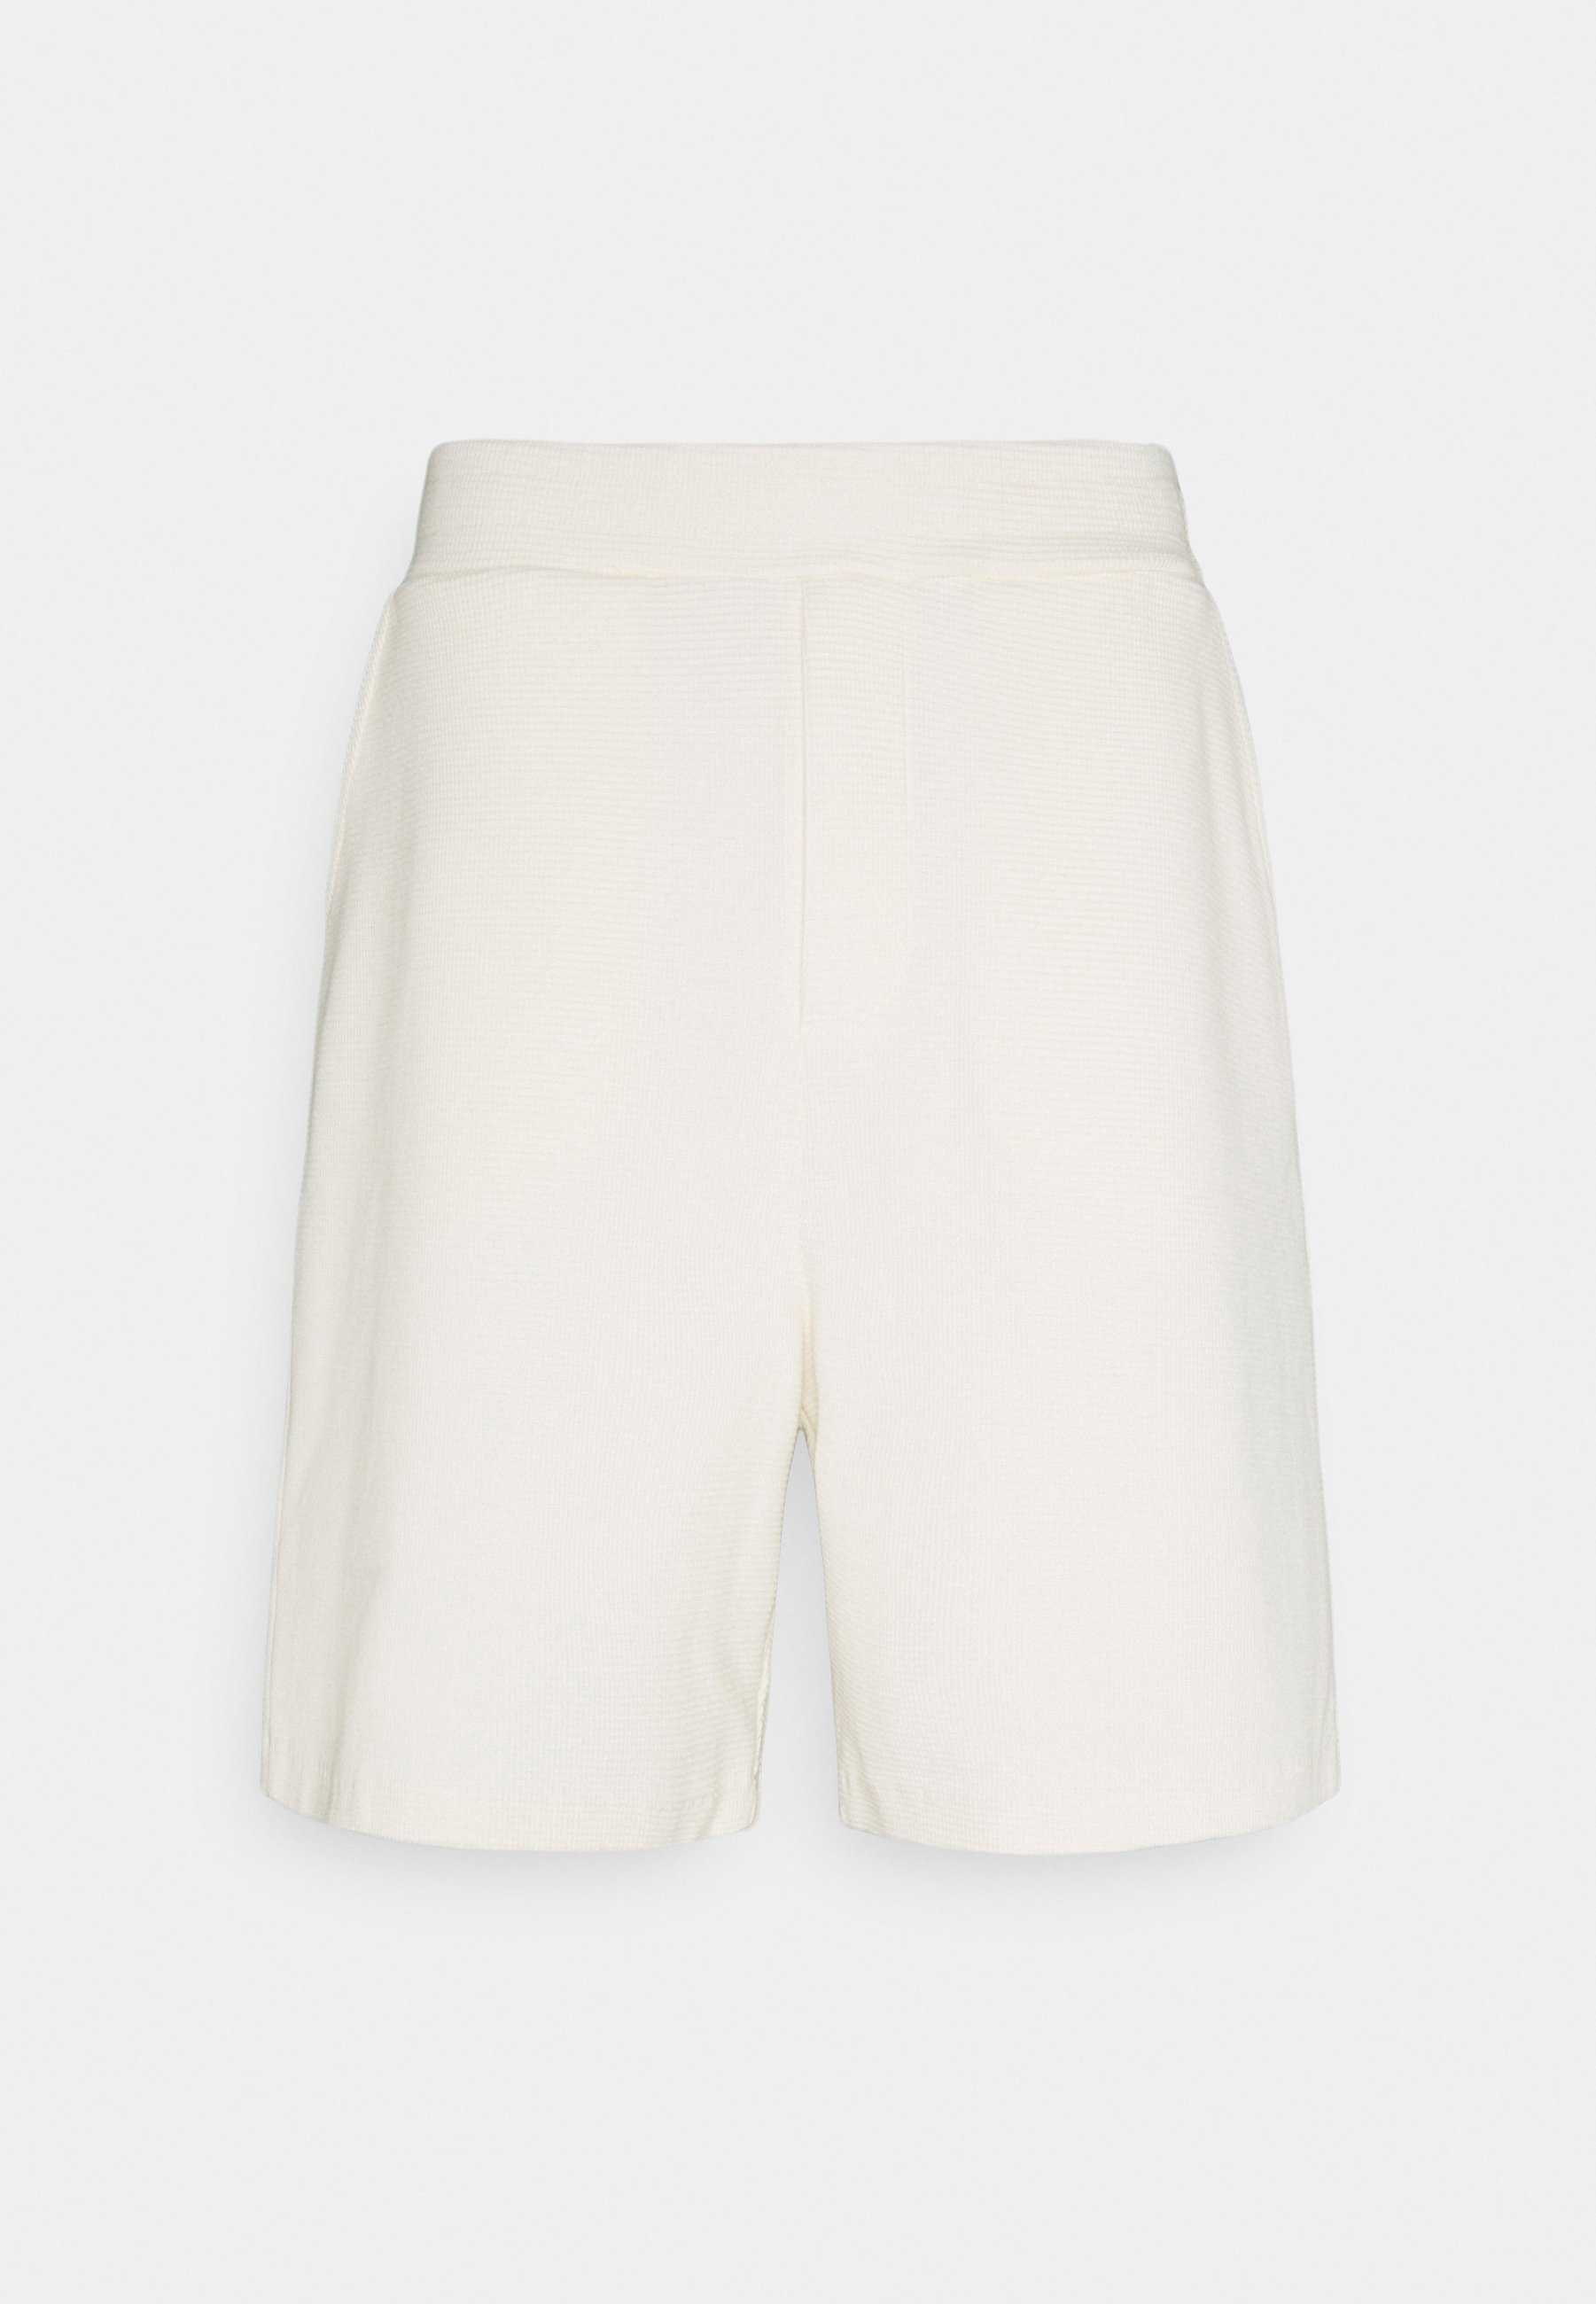 Homme Short - offwhite